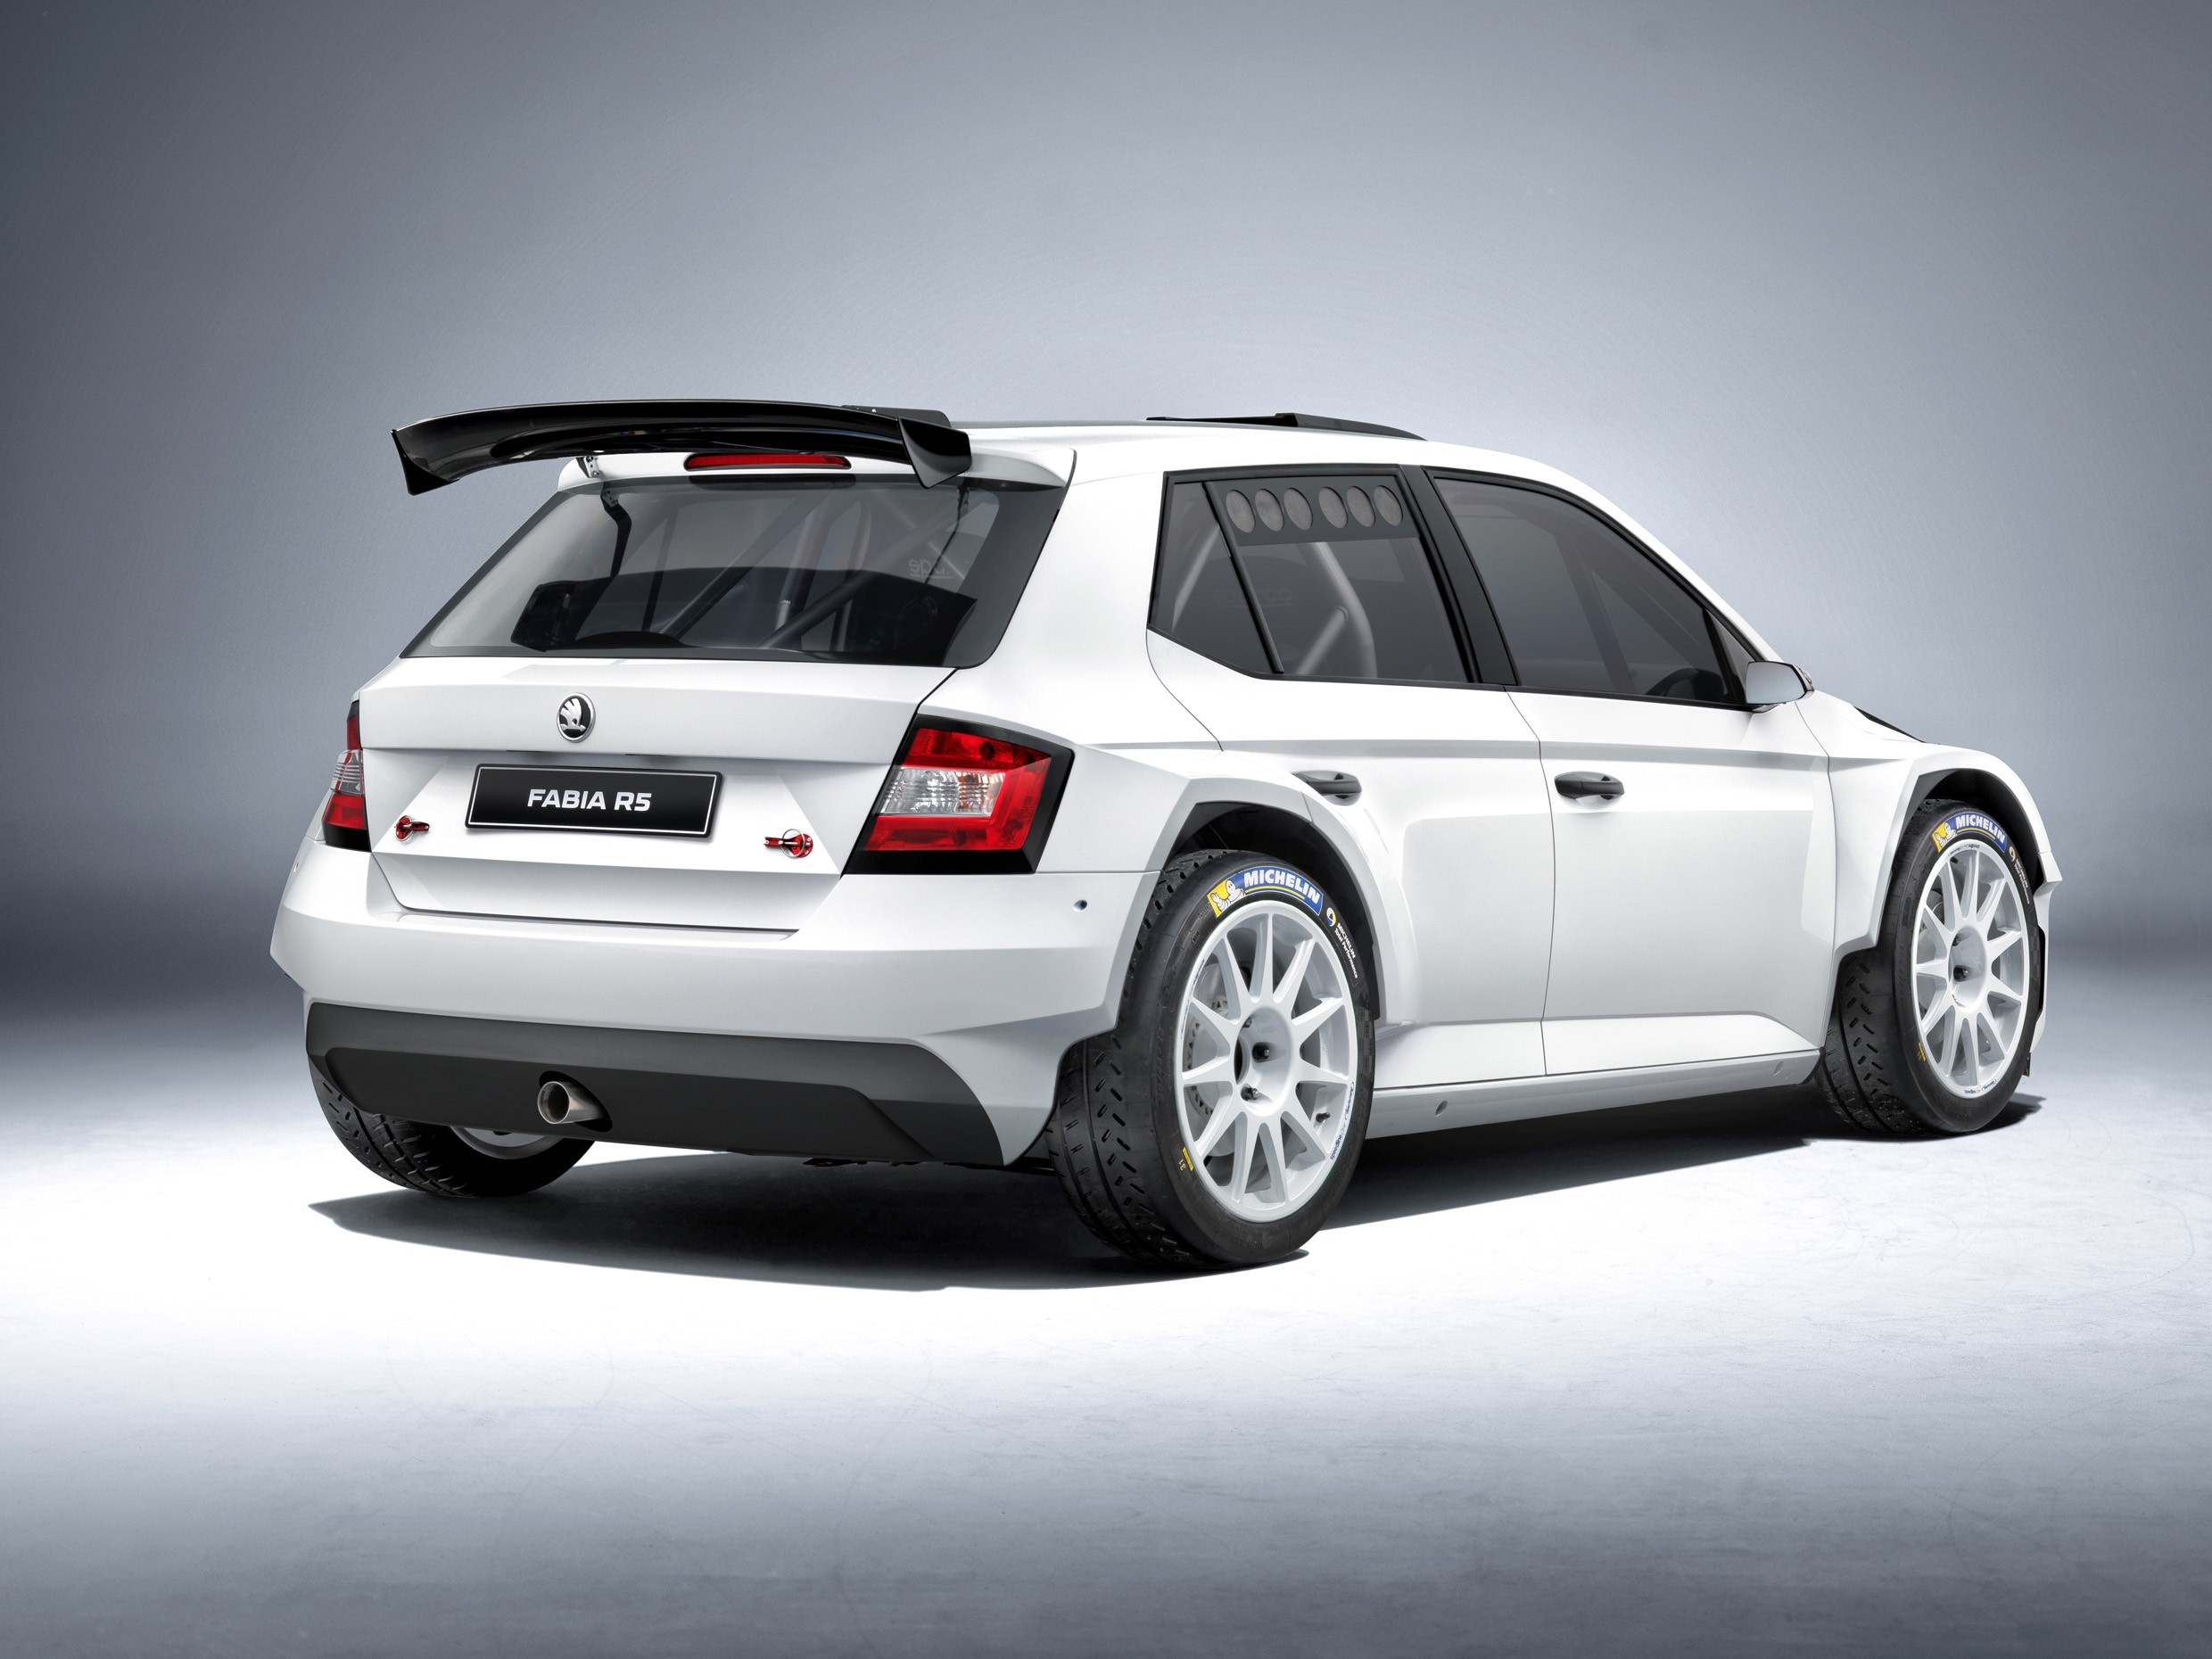 300 hp skoda fabia r 5 rally car unveiled autoevolution. Black Bedroom Furniture Sets. Home Design Ideas